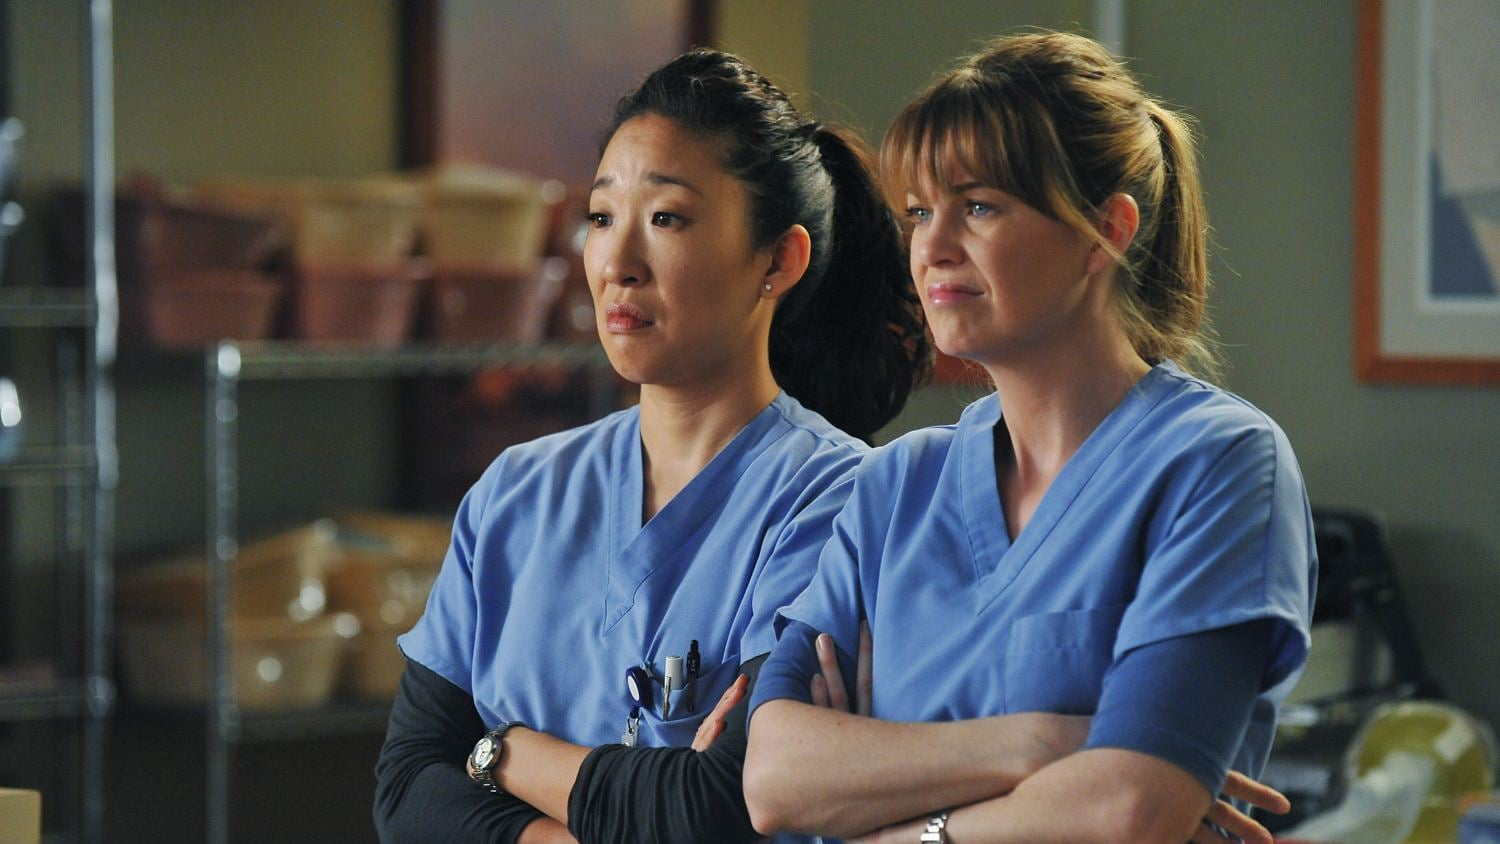 Grey's Anatomy - Season 7 Episode 14 : P.Y.T. (Pretty Young Thing)